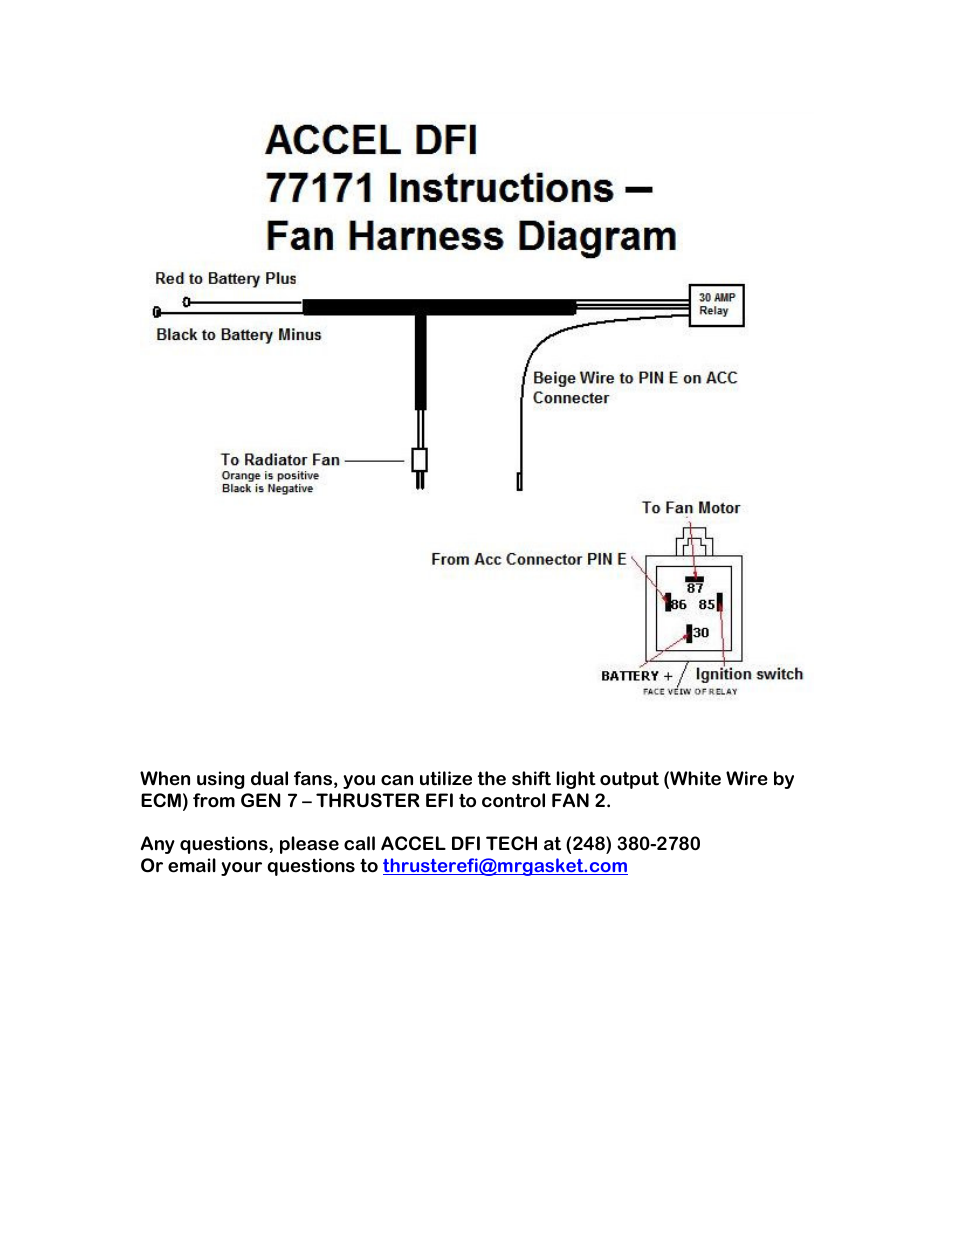 Mallory Ignition ACCEL DFI PRO RAM 77171 User Manual   1 page on atwood rv water heater diagram, omc ignition switch diagram, inboard outboard motor diagram, basic car electrical system diagram, mallory high fire wiring-diagram, electronic ignition diagram, msd 6al diagram, mallory dist wiring-diagram, fairbanks morse magneto diagram, mallory carburetor diagram,